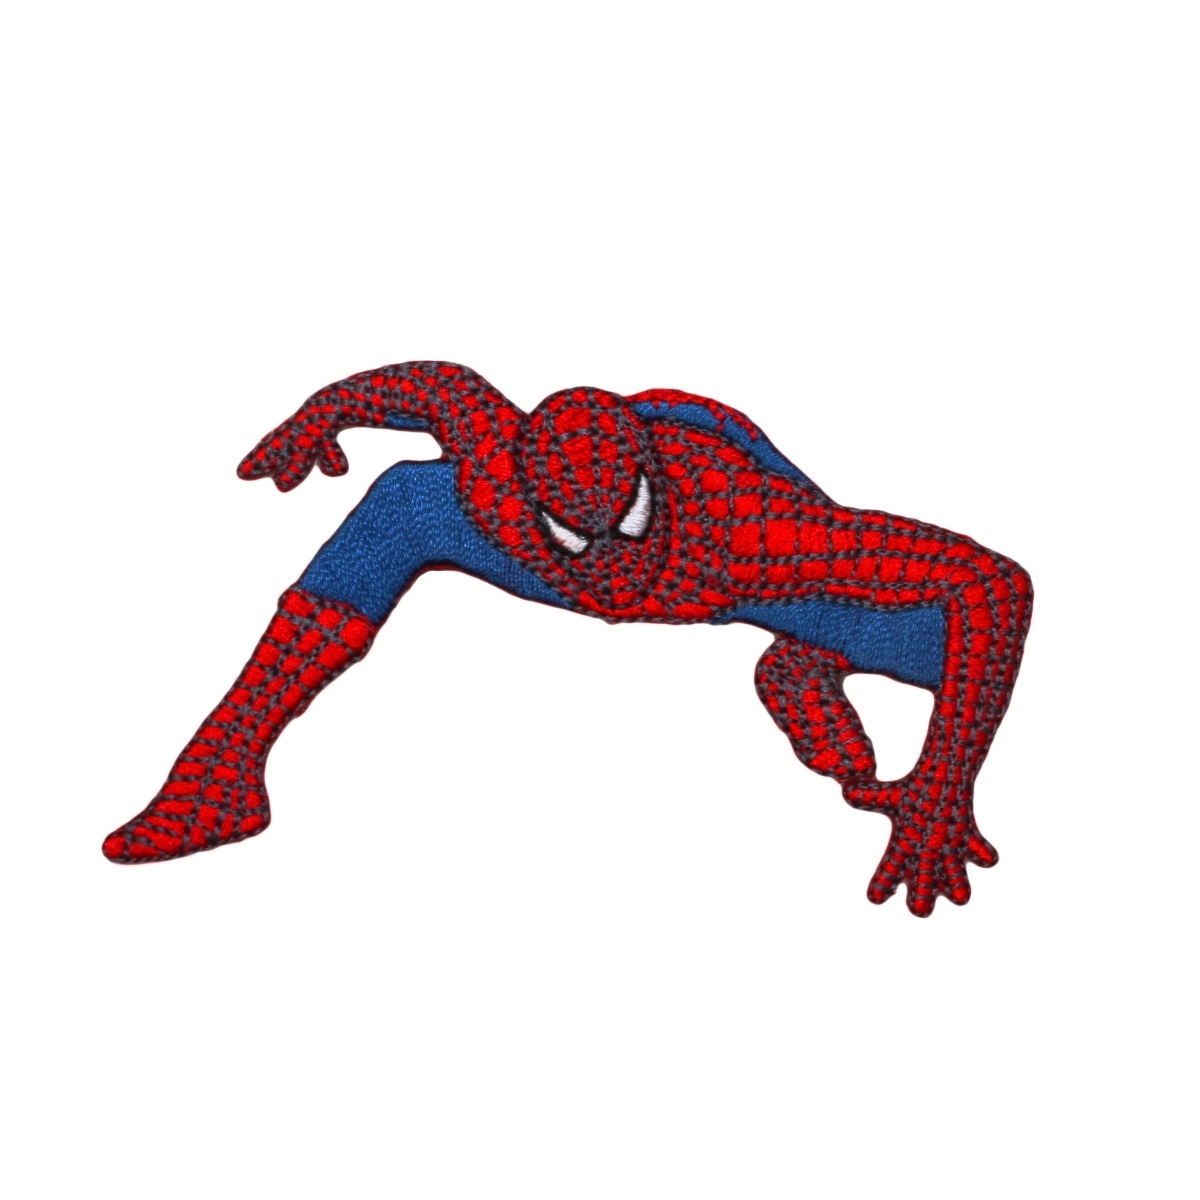 Spider-Man Action Stance Patch Marvel Comics Superhero Fan Iron-On Applique